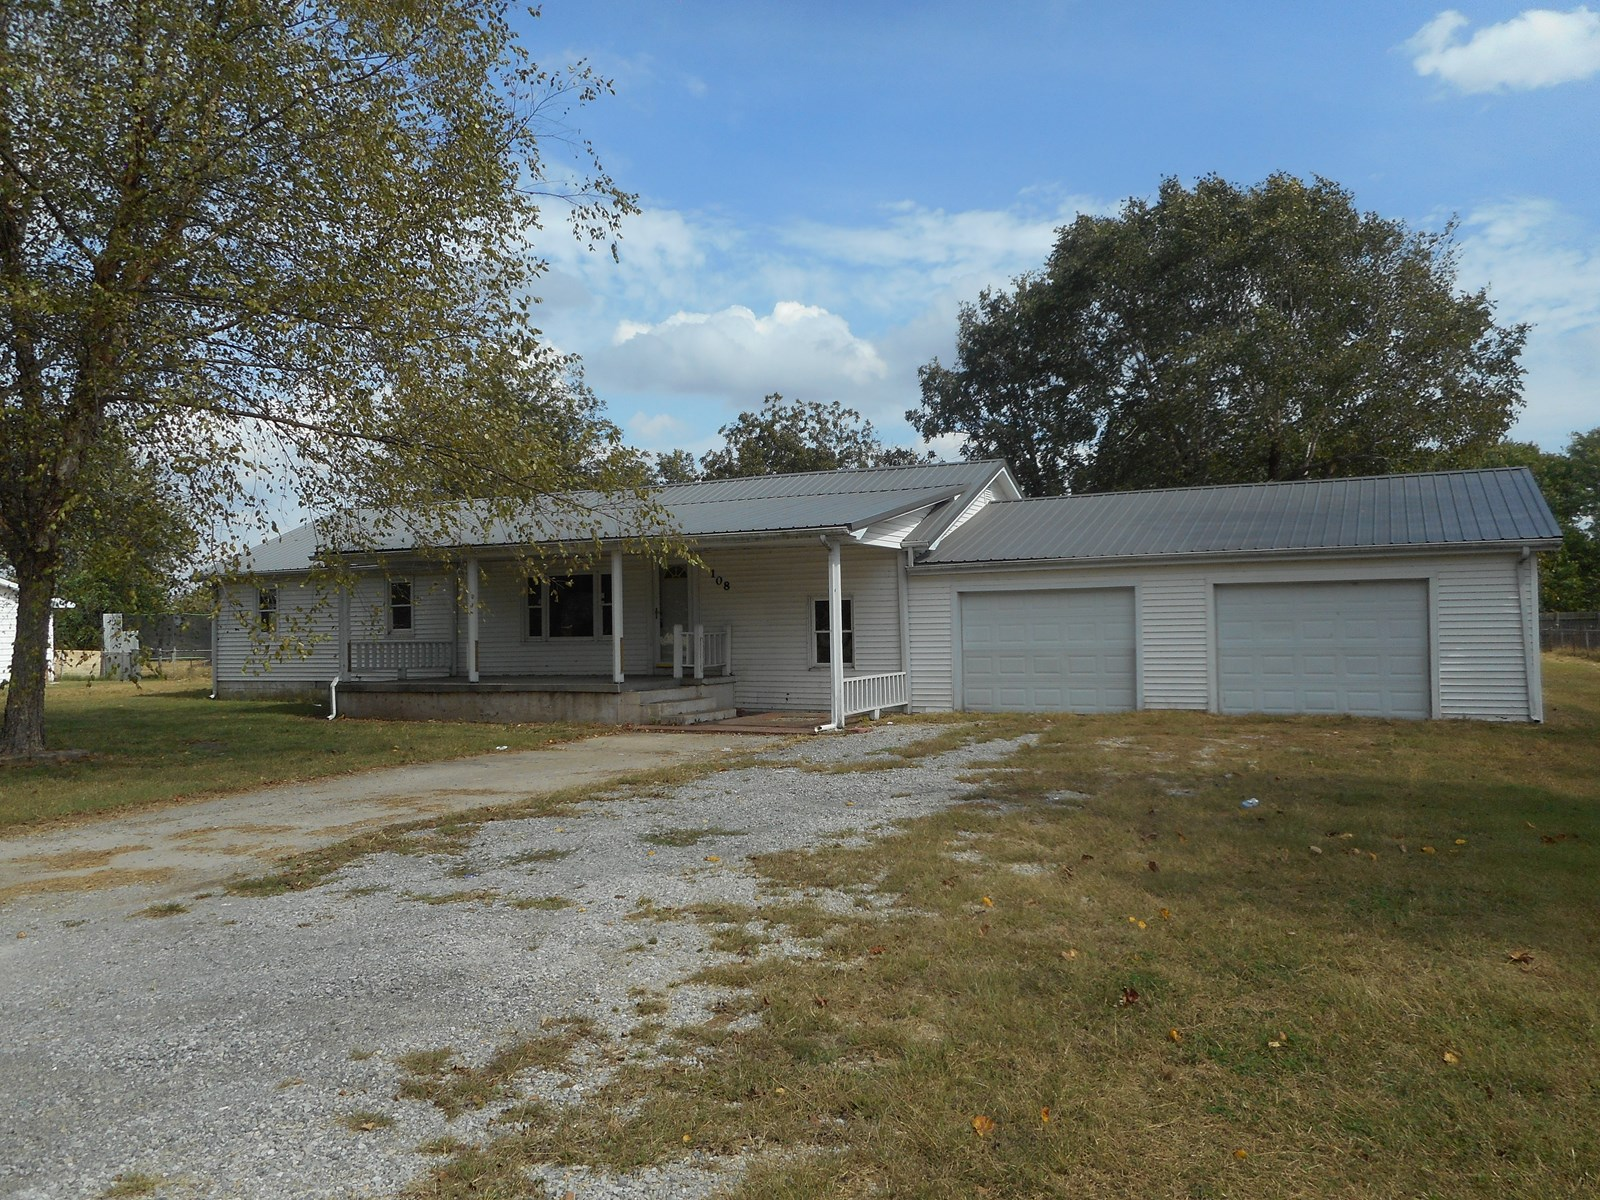 For Sale 3 BR, 1 Ba House Rural Sikeston MO